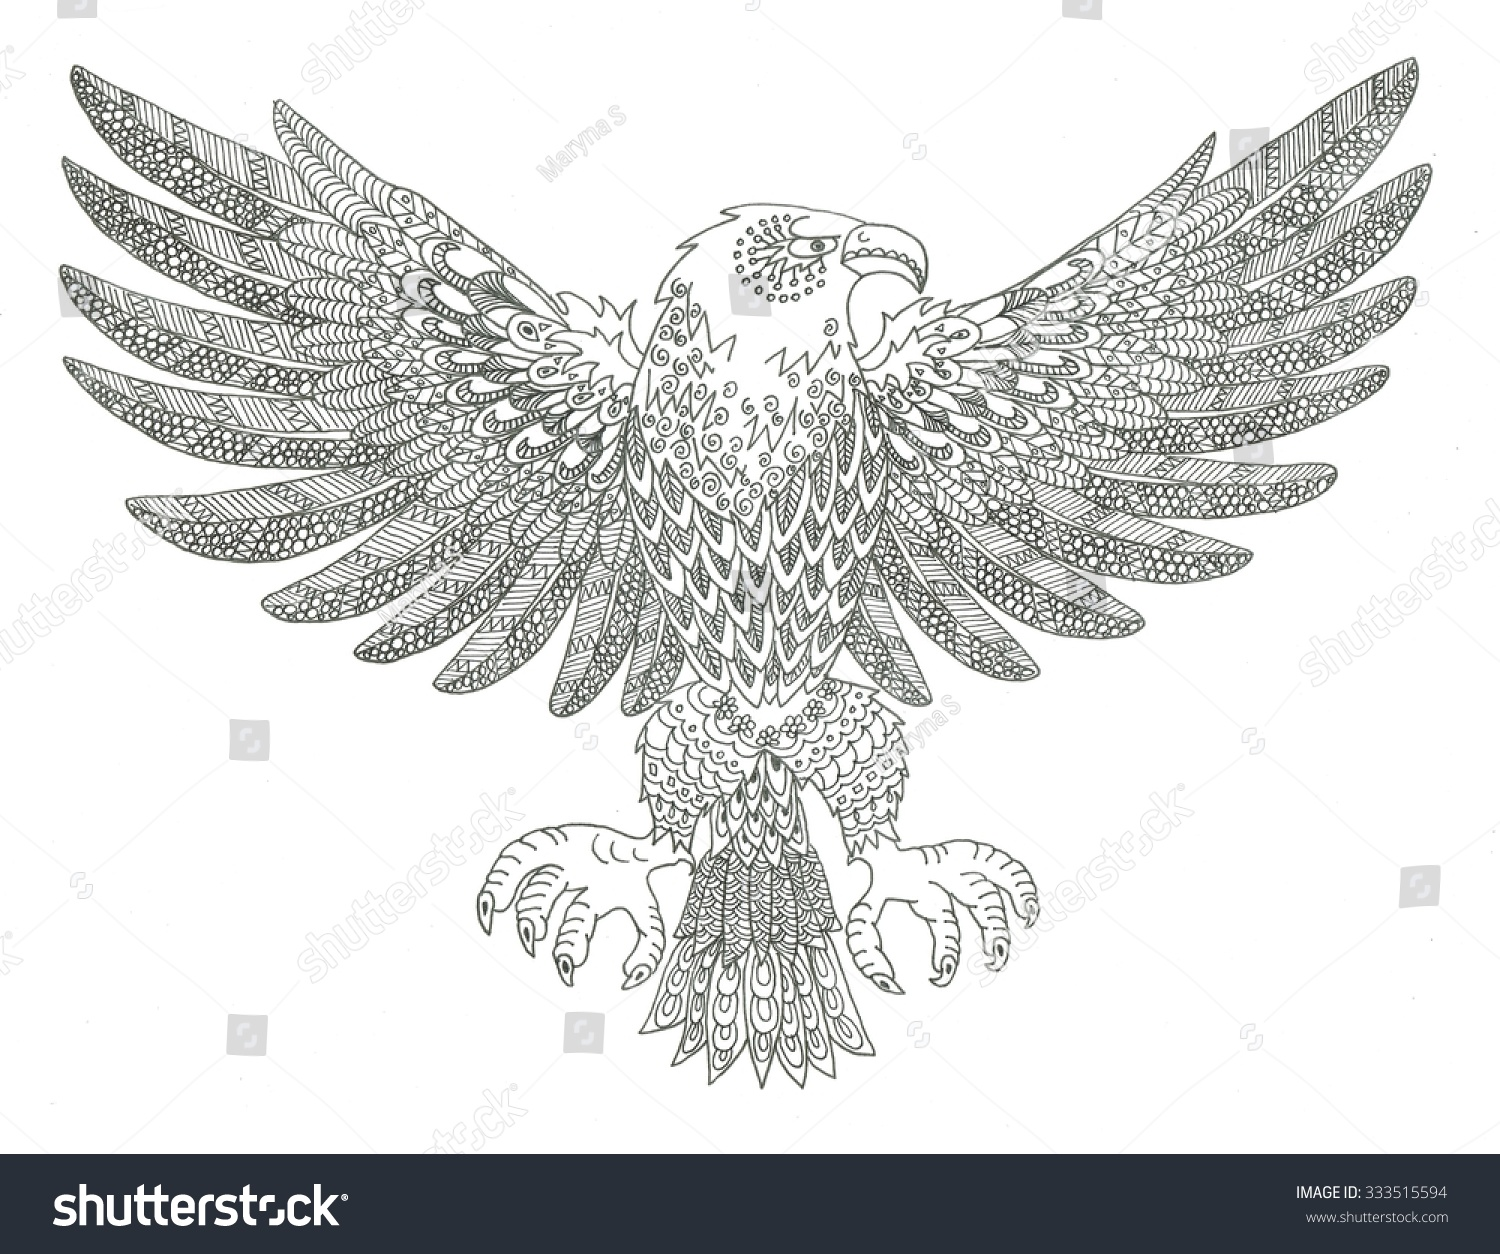 eagle coloring page - Eagle Coloring Page